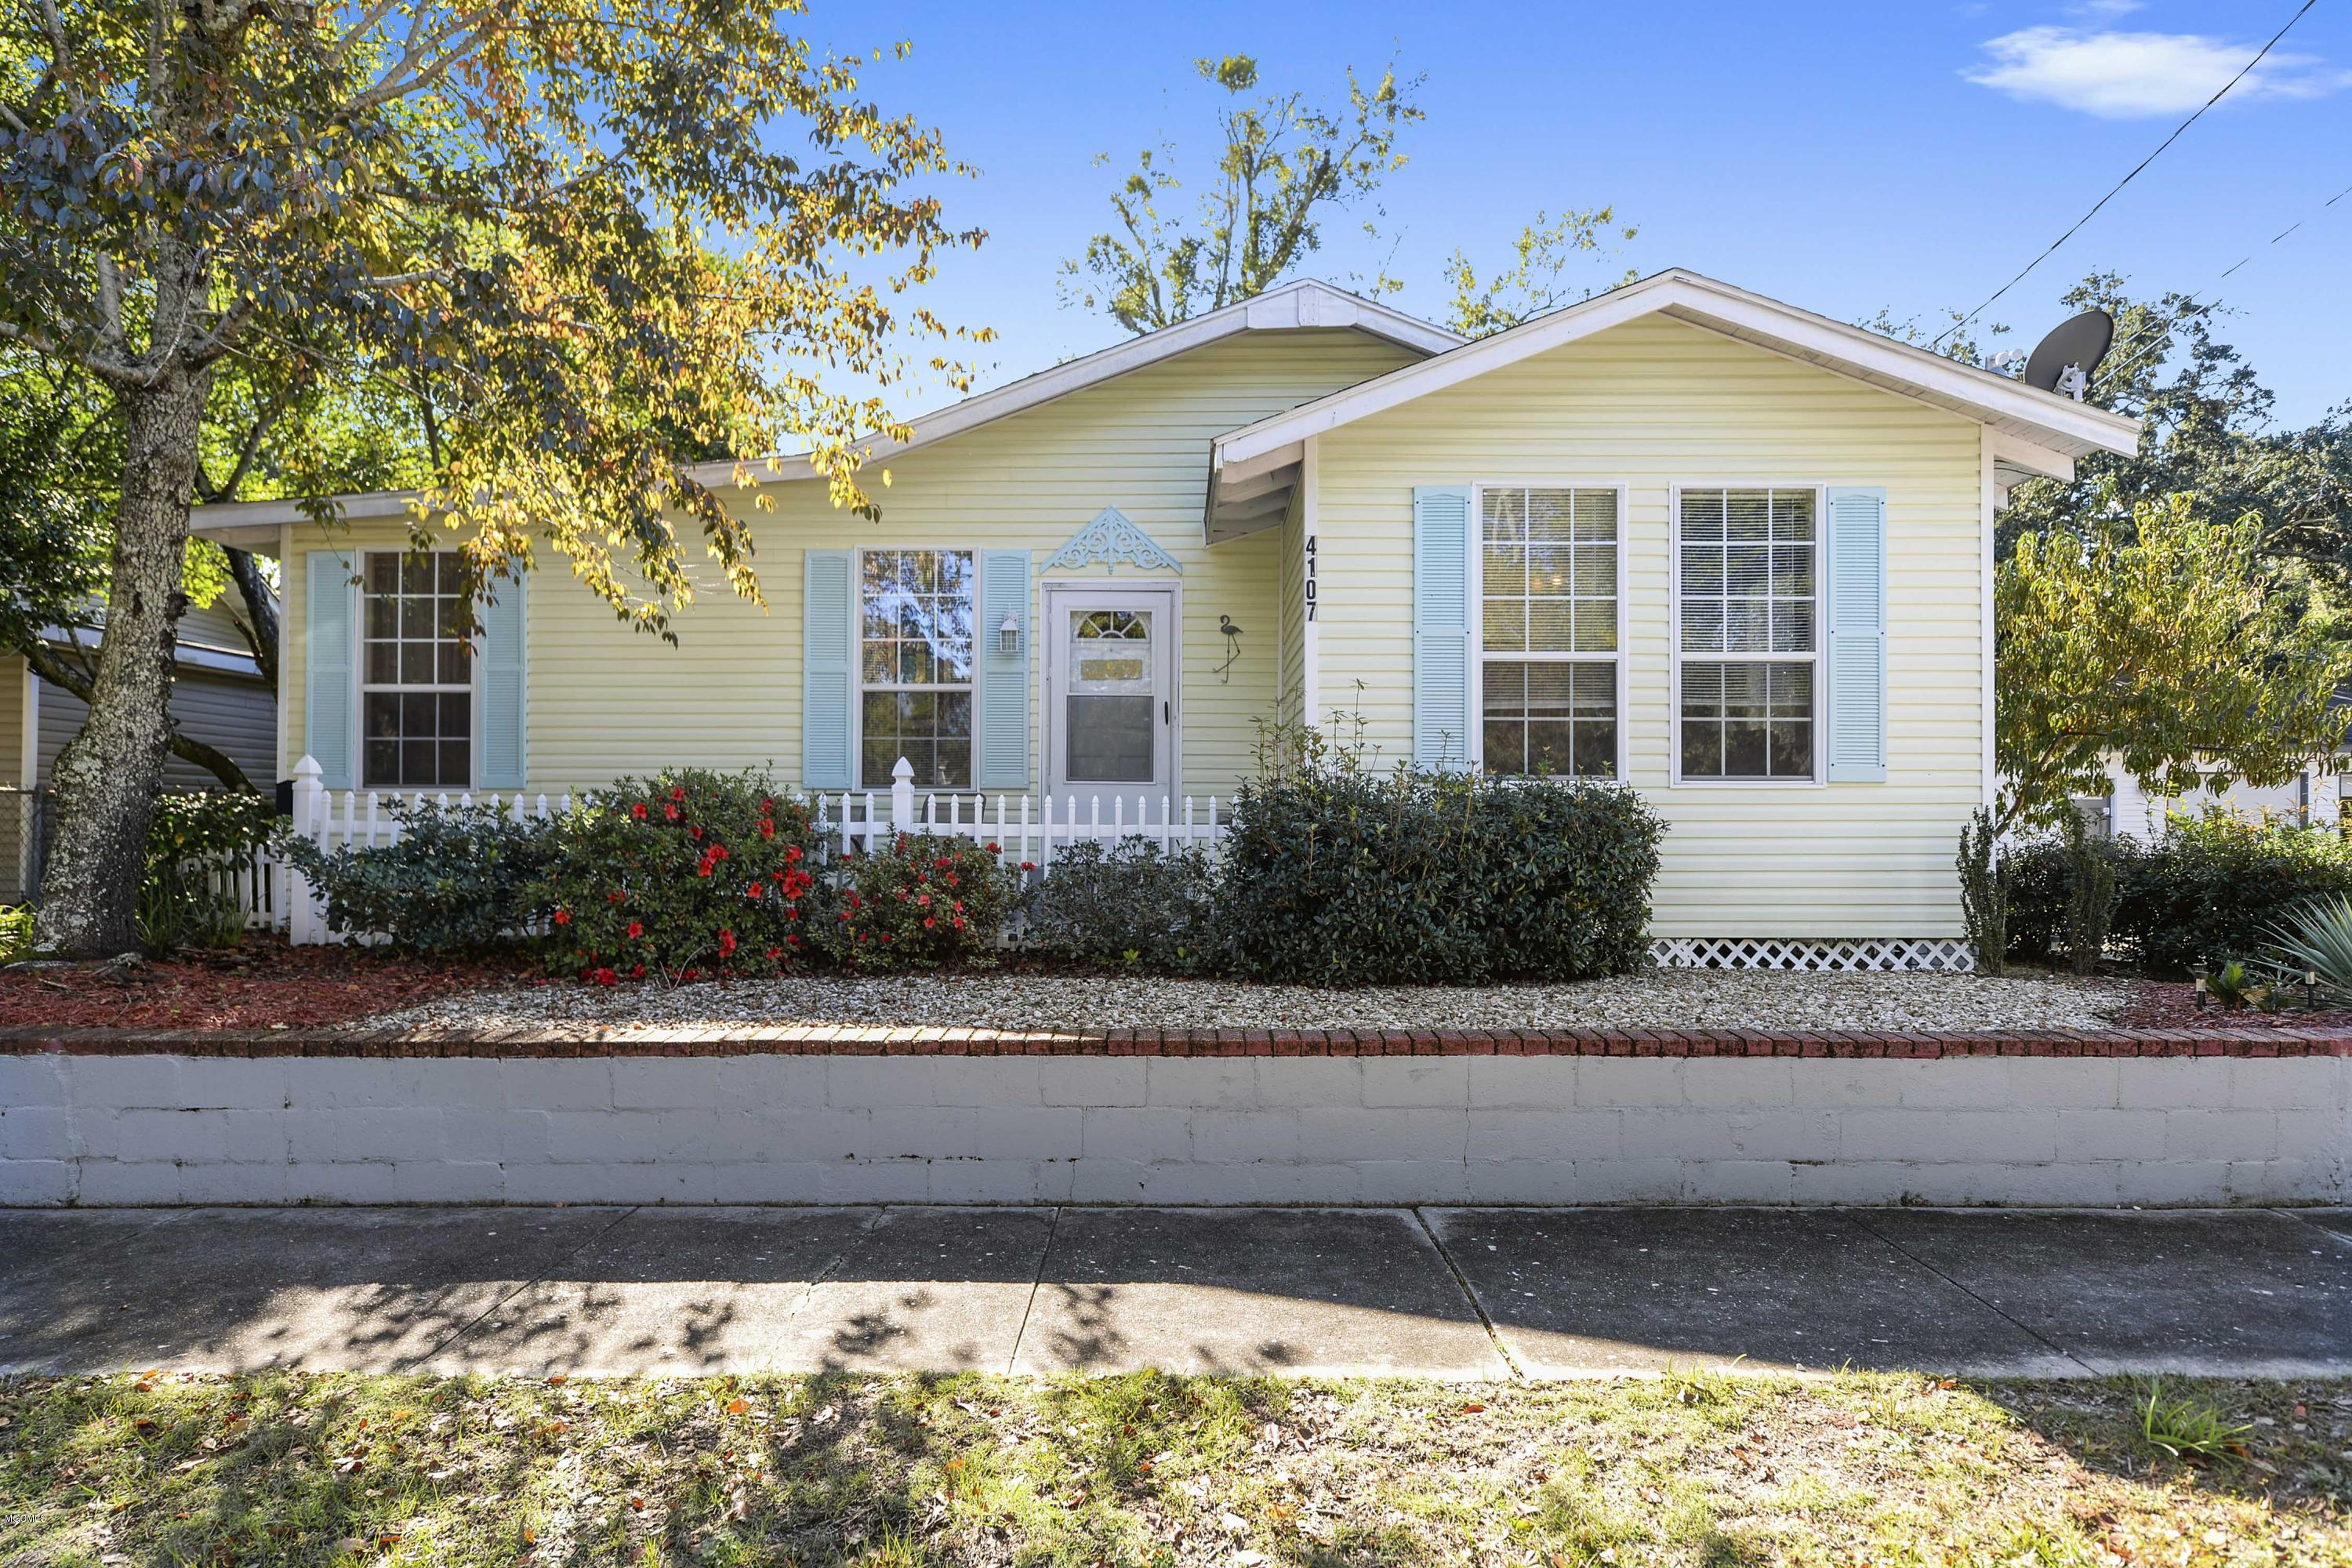 4107 9th St, Gulfport, Mississippi 39501, 3 Bedrooms Bedrooms, ,2 BathroomsBathrooms,Single-family,For Sale,9th,341150